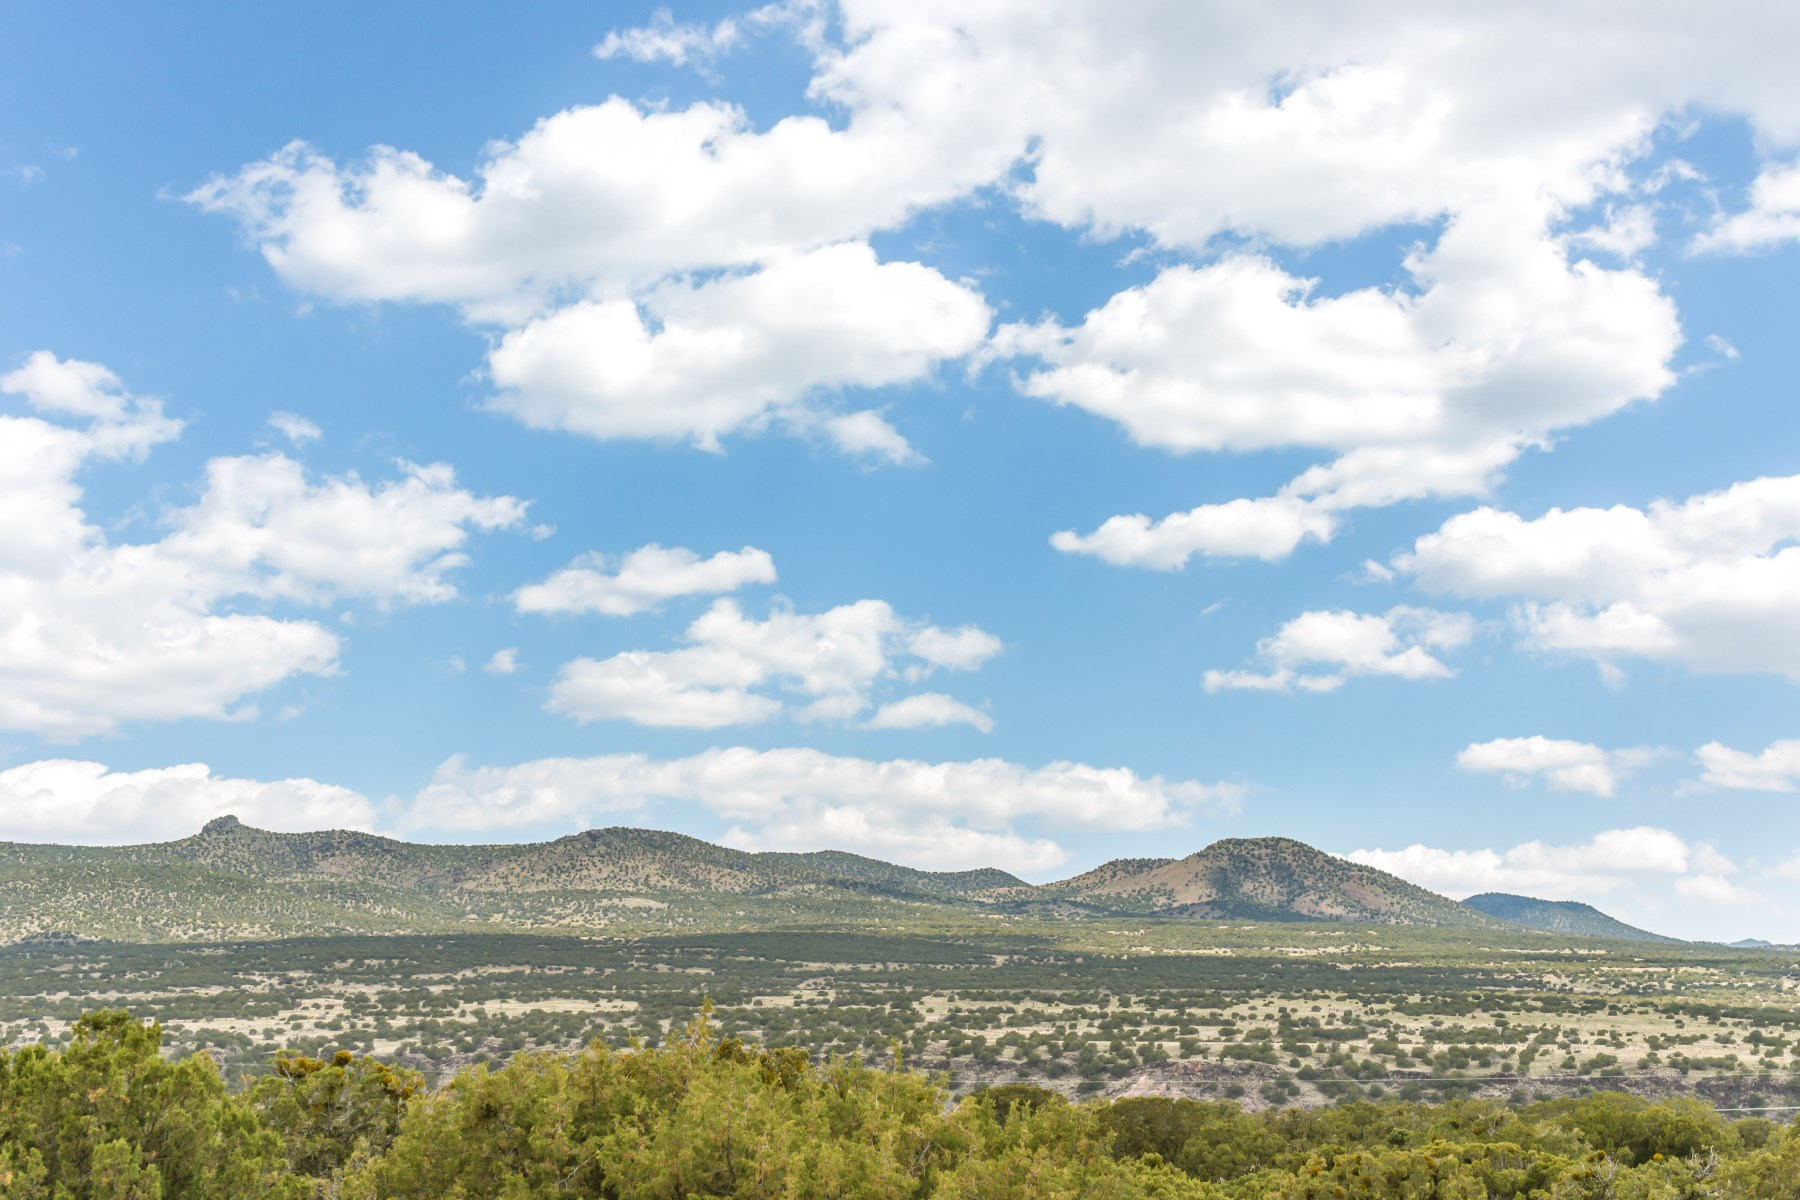 Land for Sale at 19 Via De Las Yeguas, The Estancia's Santa Fe, New Mexico 87506 United States